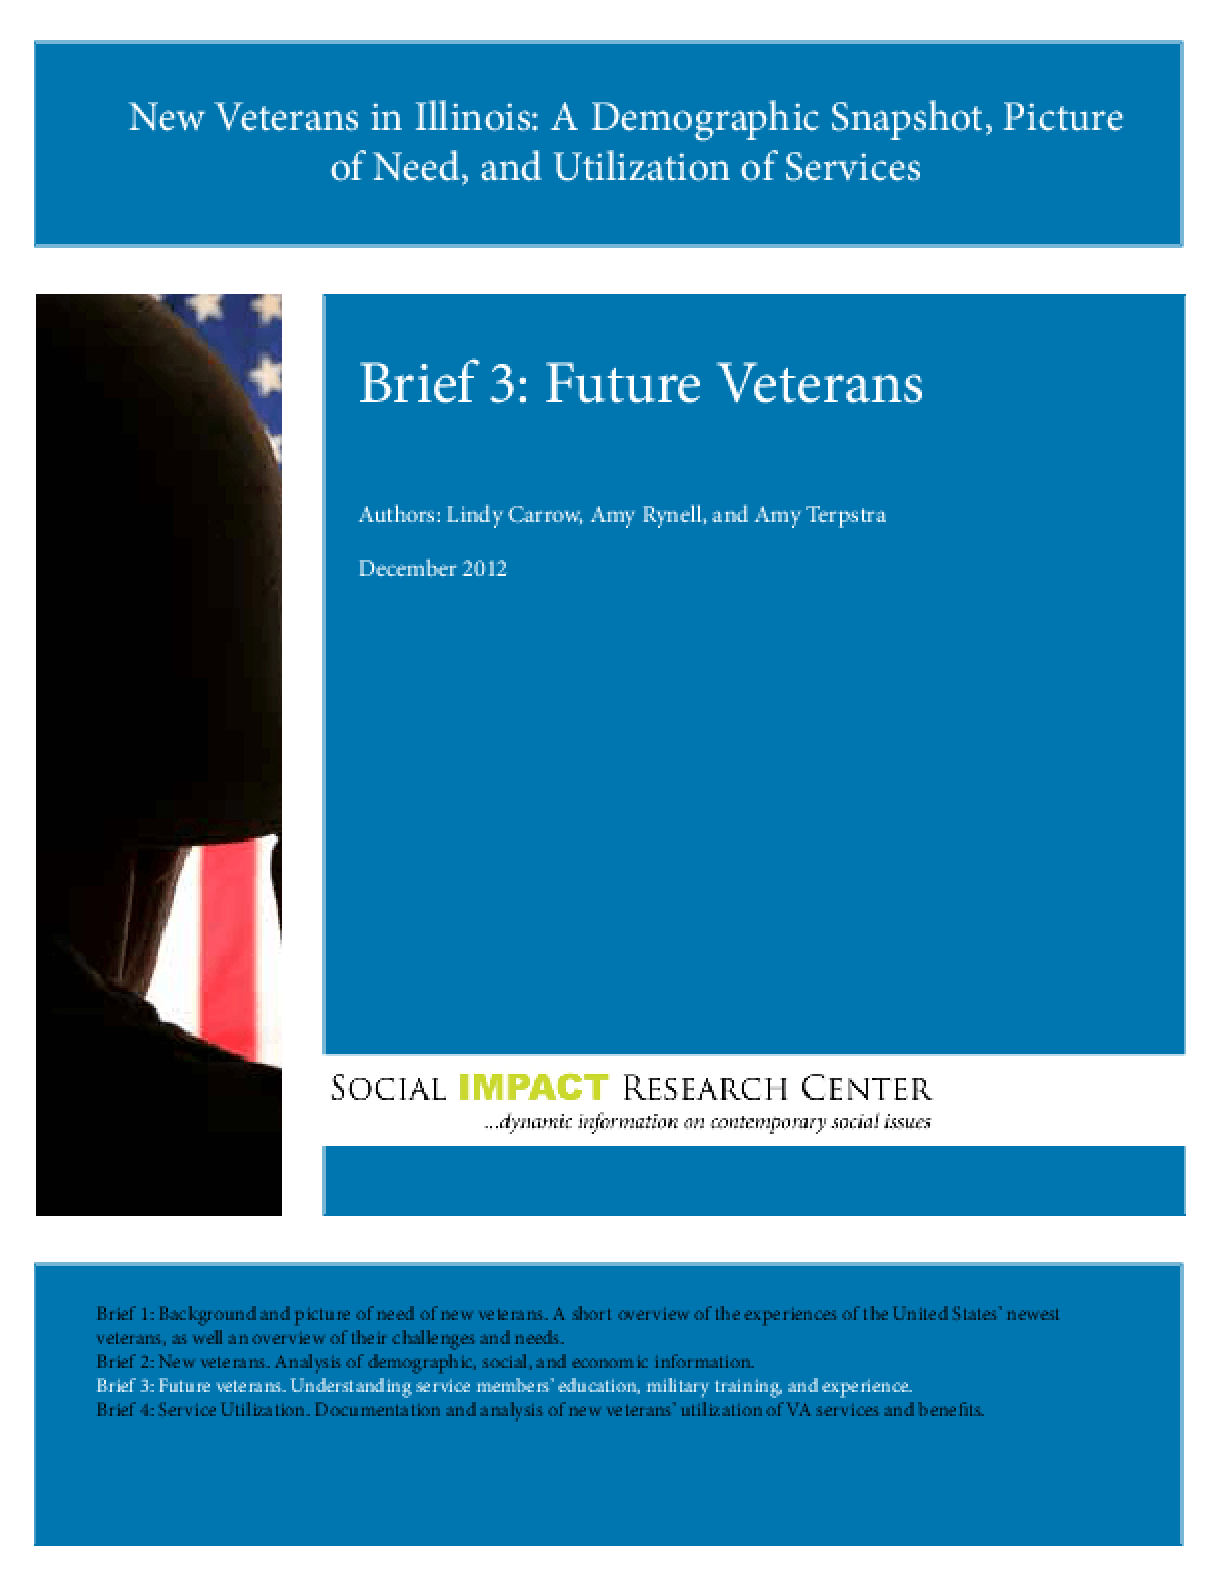 New Veterans in Illinois: Brief 3, Future Veterans